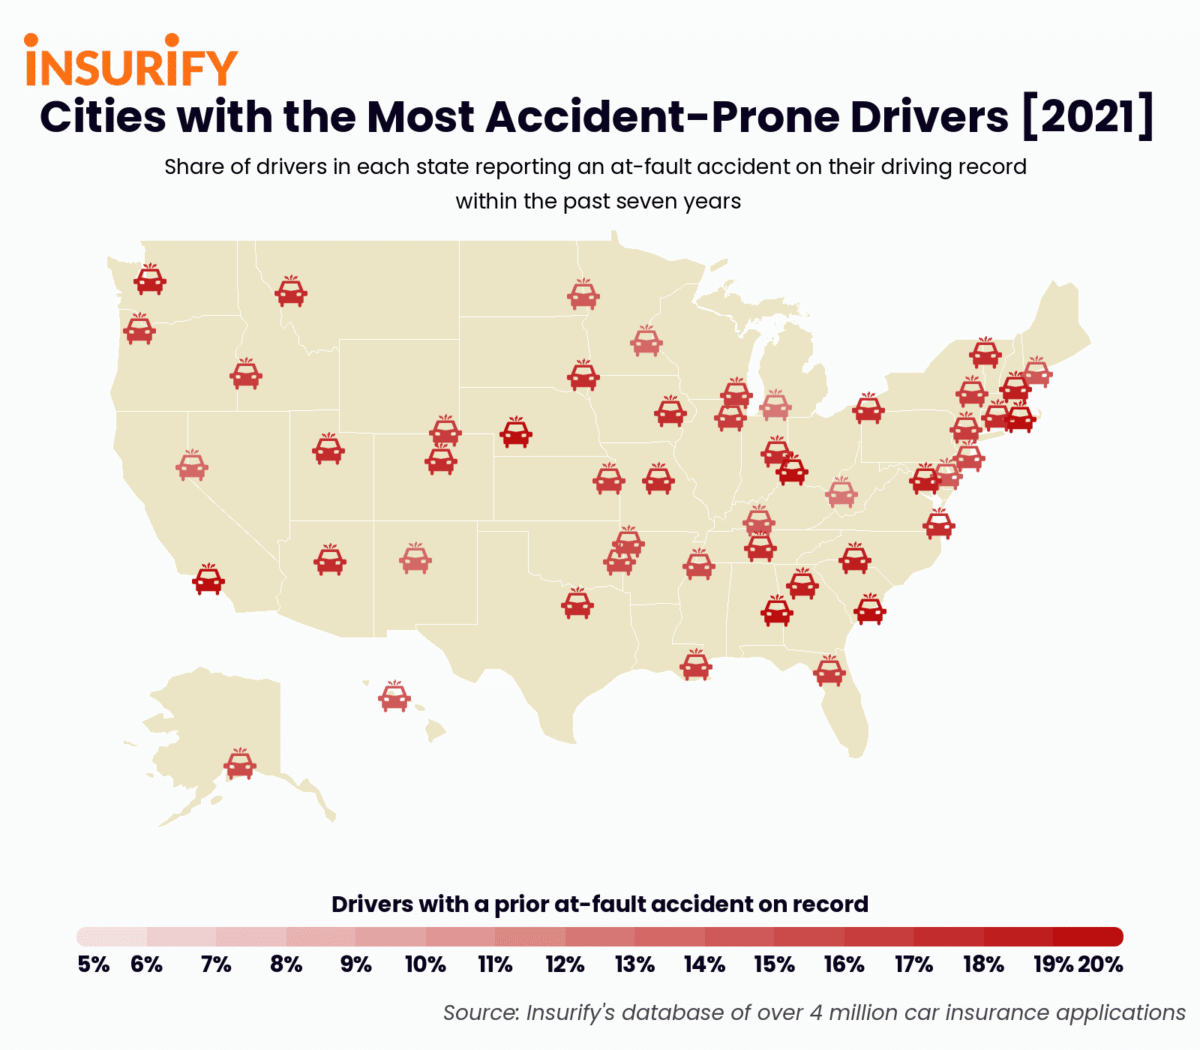 Icon map showing the city in each state with the most accident-prone drivers in 2021.